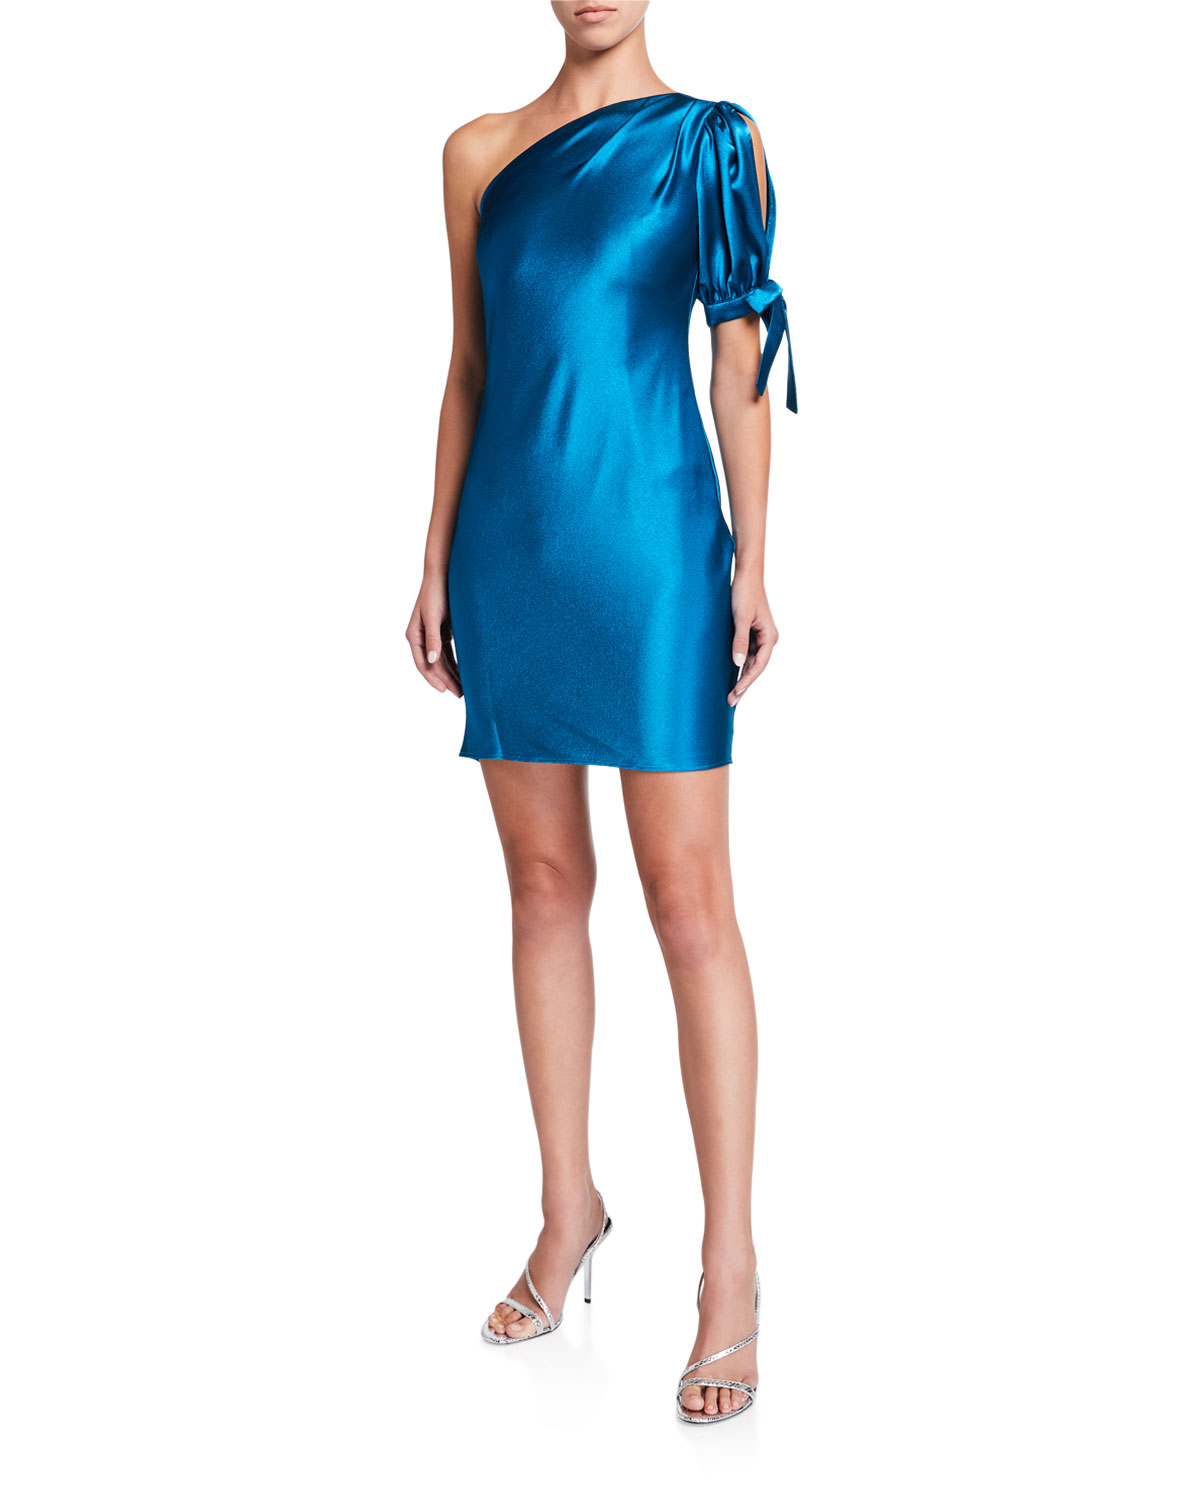 Aidan by Aidan Mattox One-Shoulder Liquid Satin Cocktail Dress